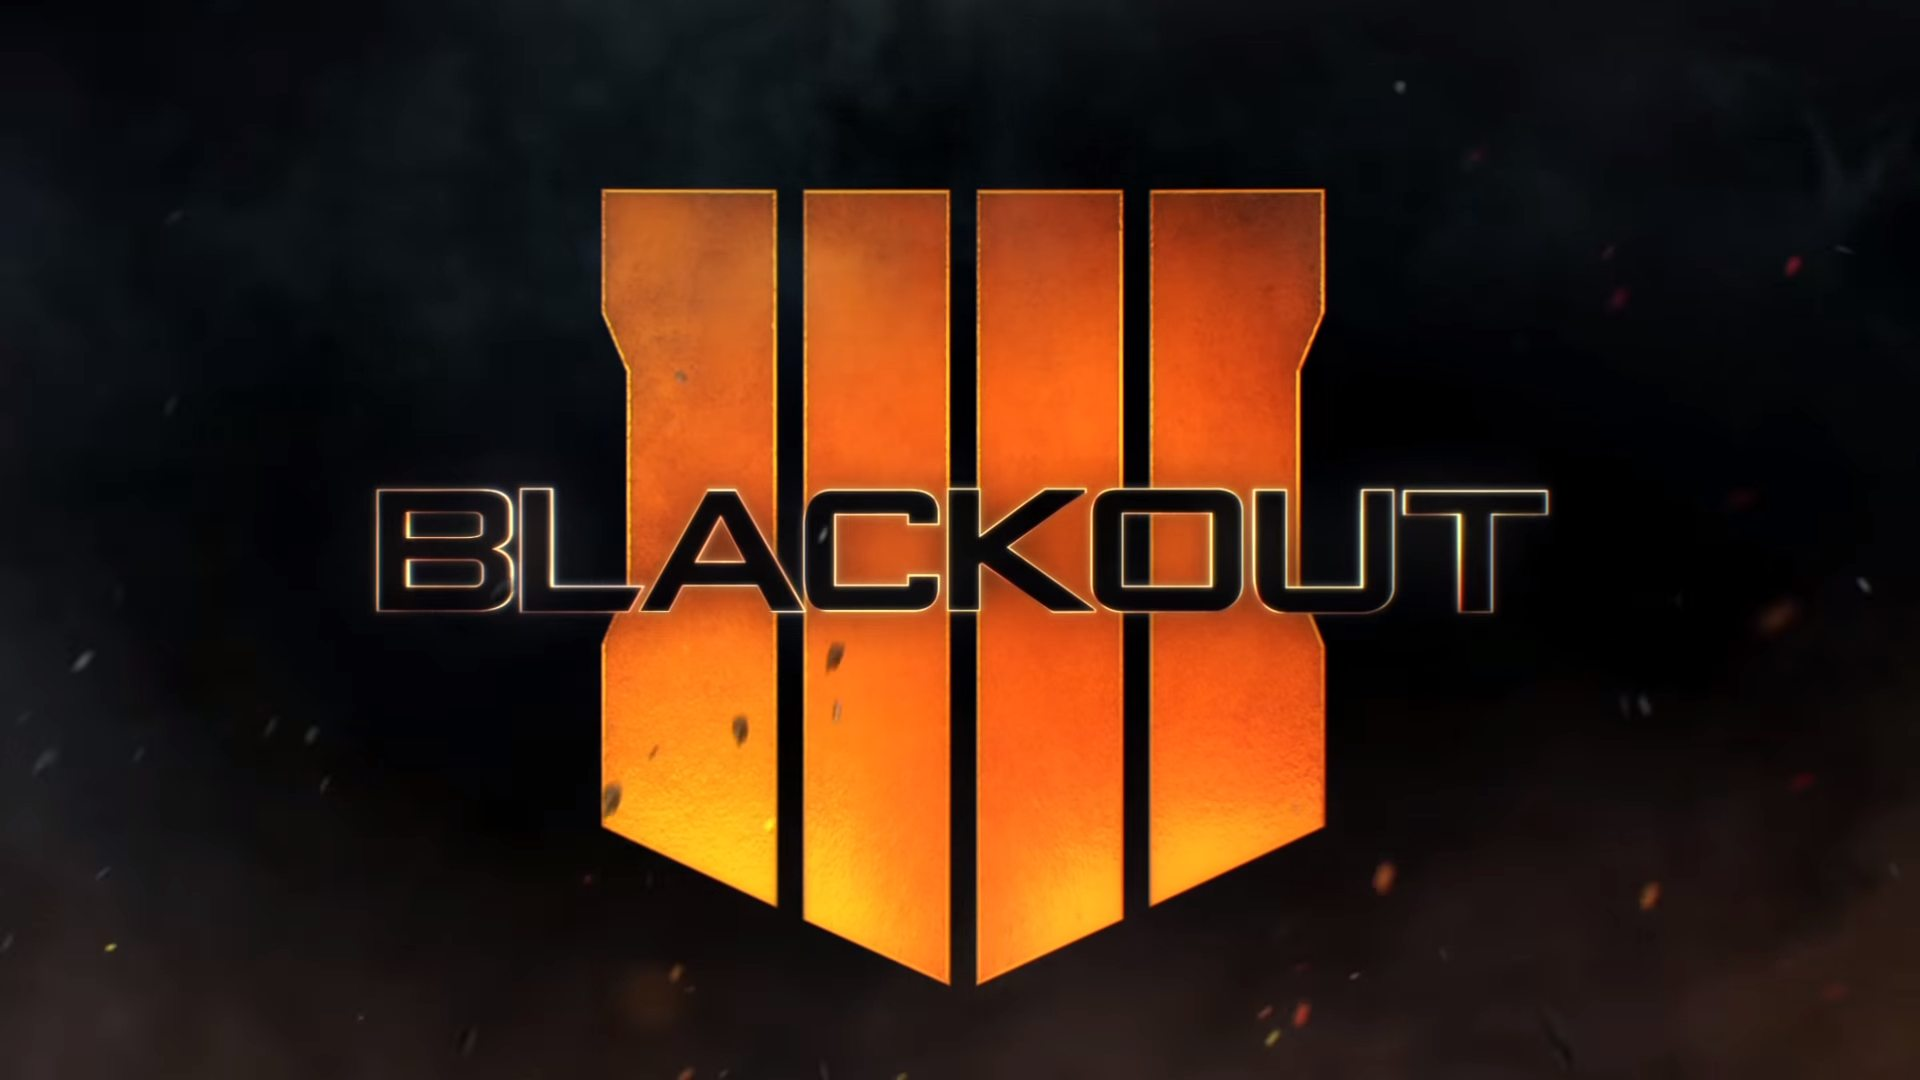 Call of Duty: Black Ops 4 Blackout mode